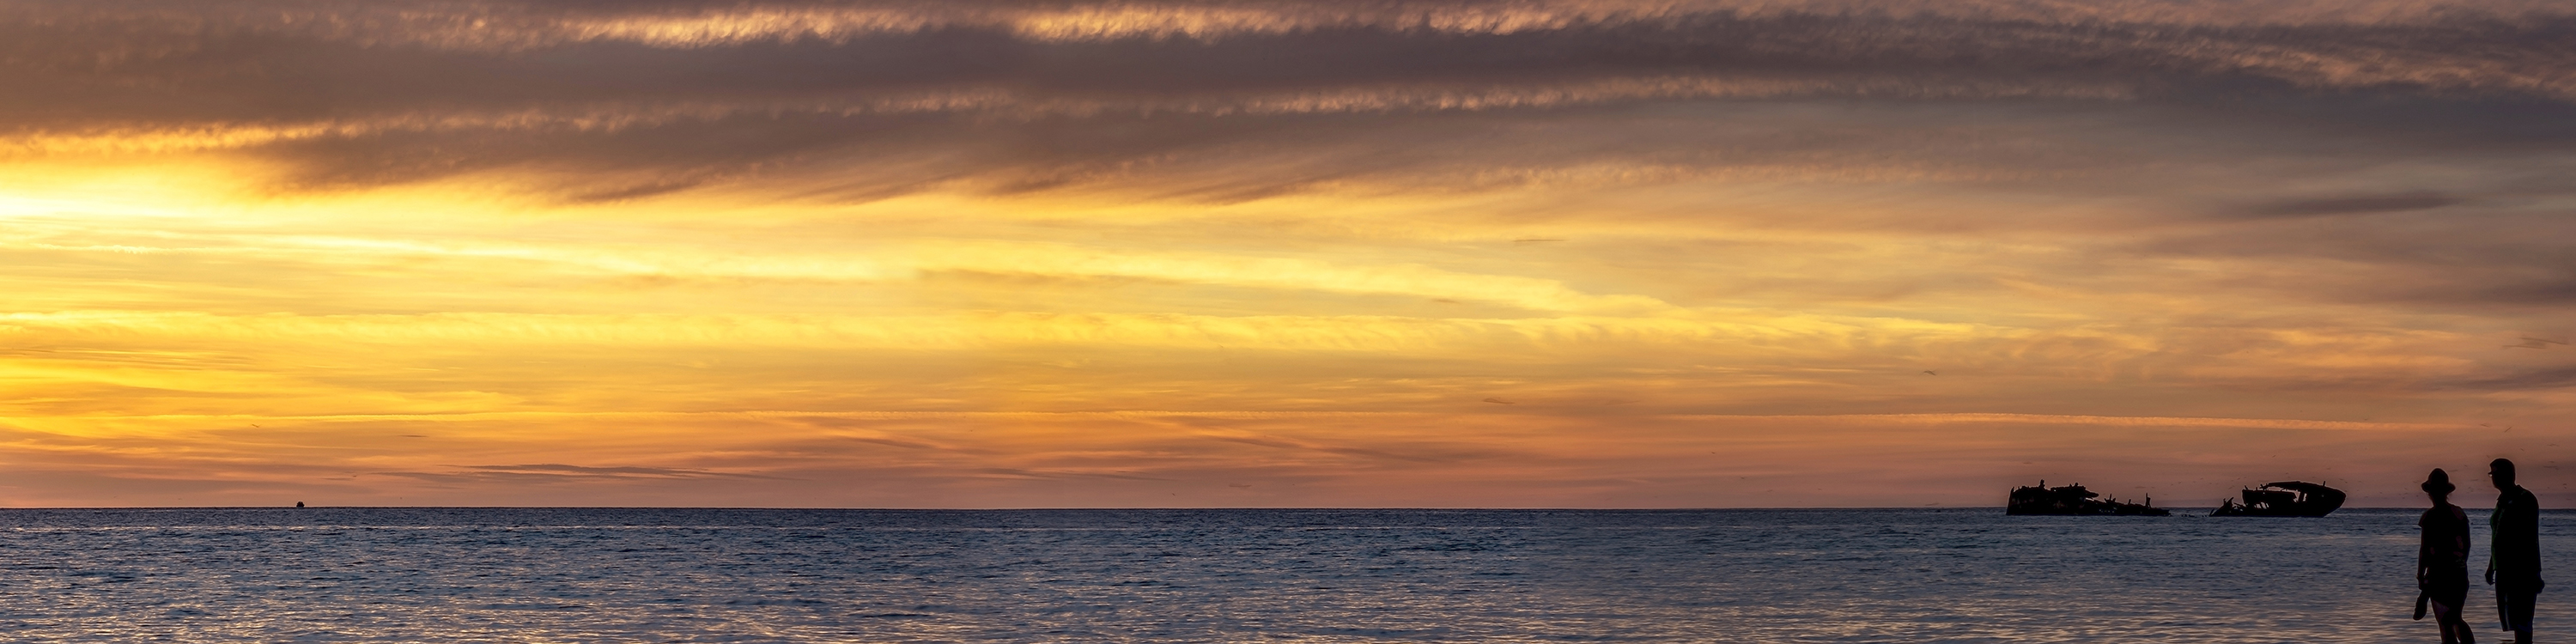 3F Pano Summer Sunset at Heron Island, Great Barrier Reef QLD